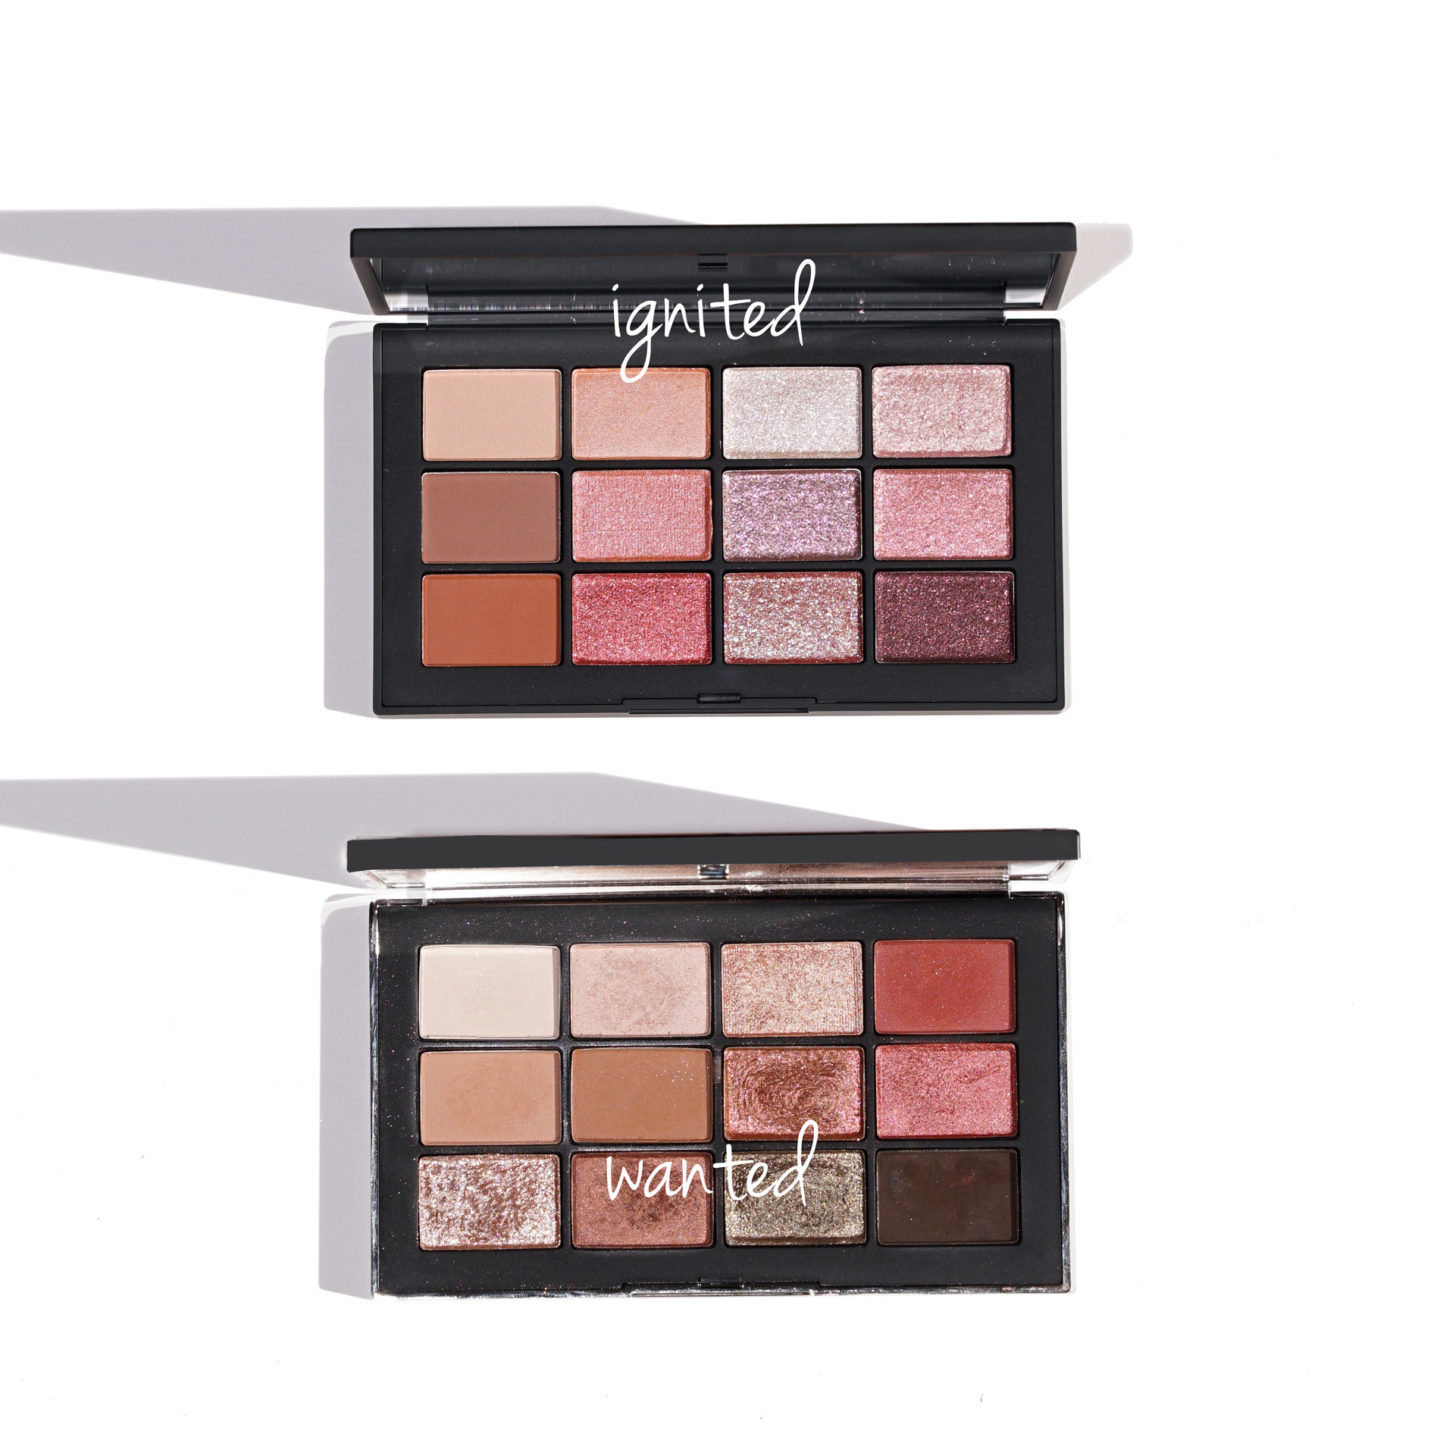 NARS Ignited vs Wanted Eyeshadow Palettes